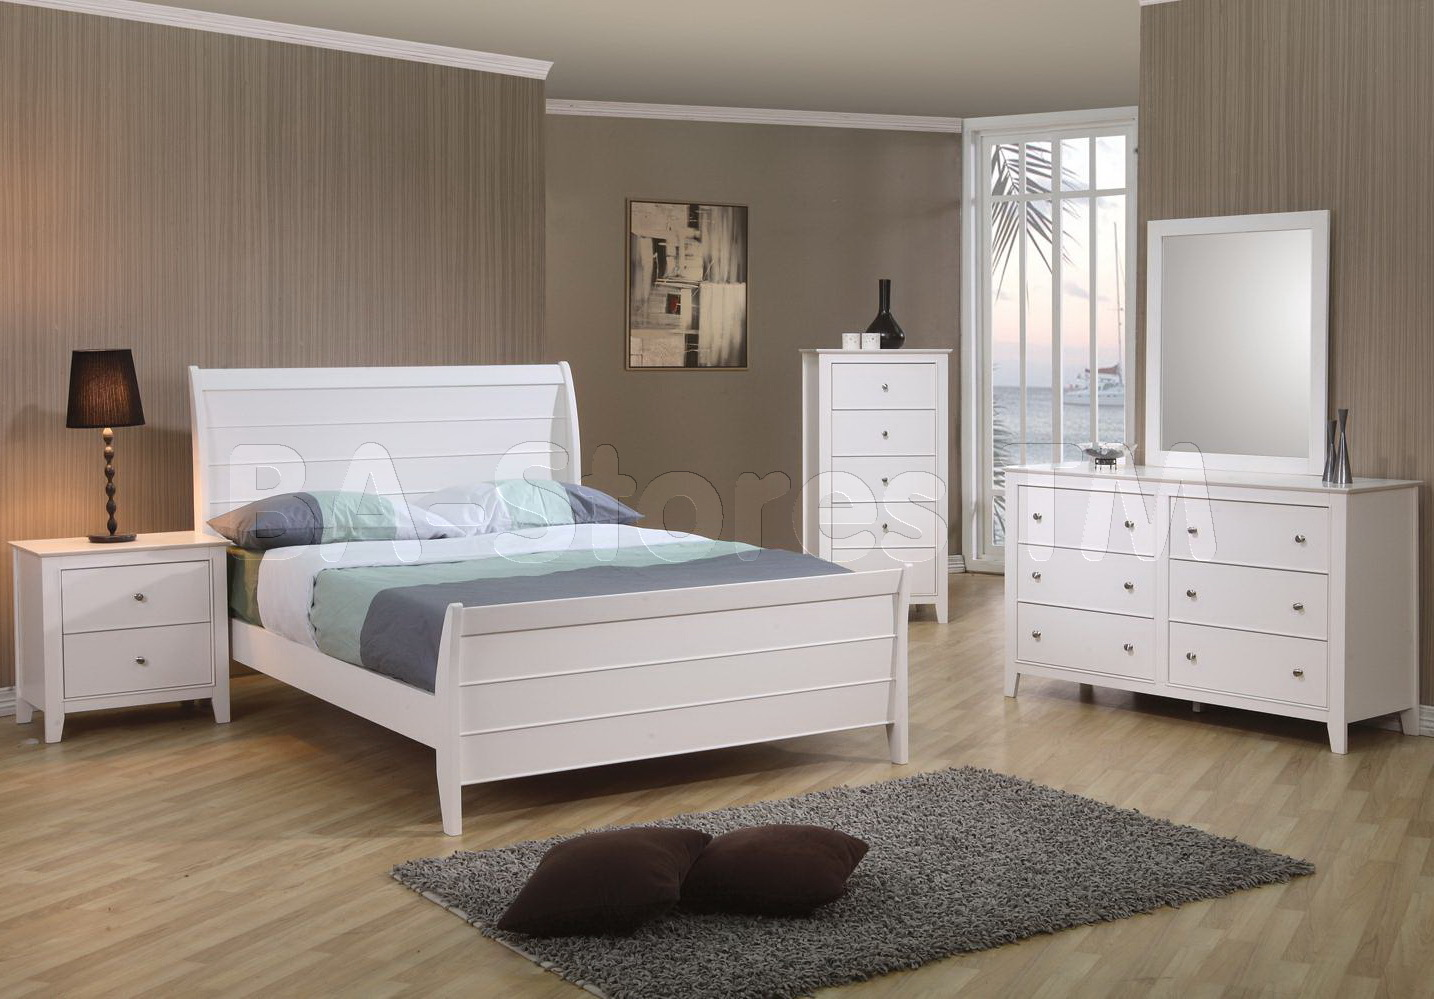 full size bedroom furniture for kids photo - 3